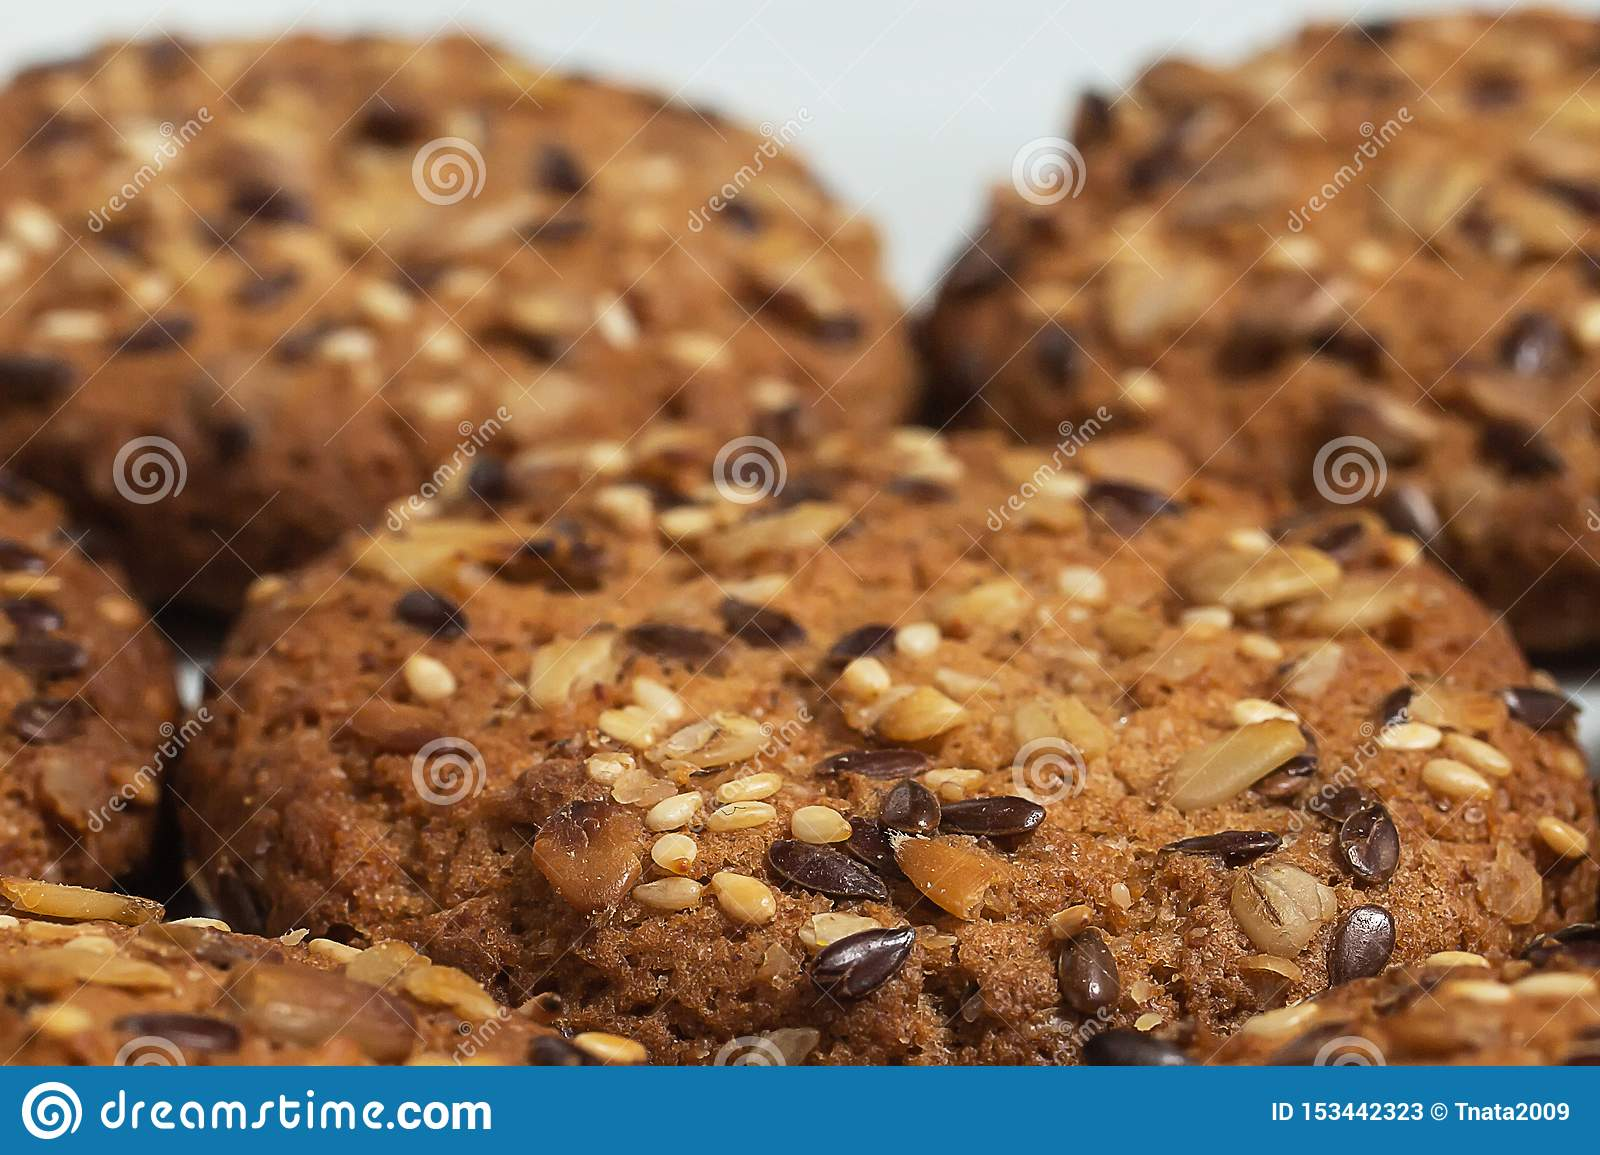 Macro Photo Of Brown Dietary Low Calorie Fitness Cereal Biscuits With Sprinkling Closeup On White Background Stock Image Image Of Circle Brown 153442323